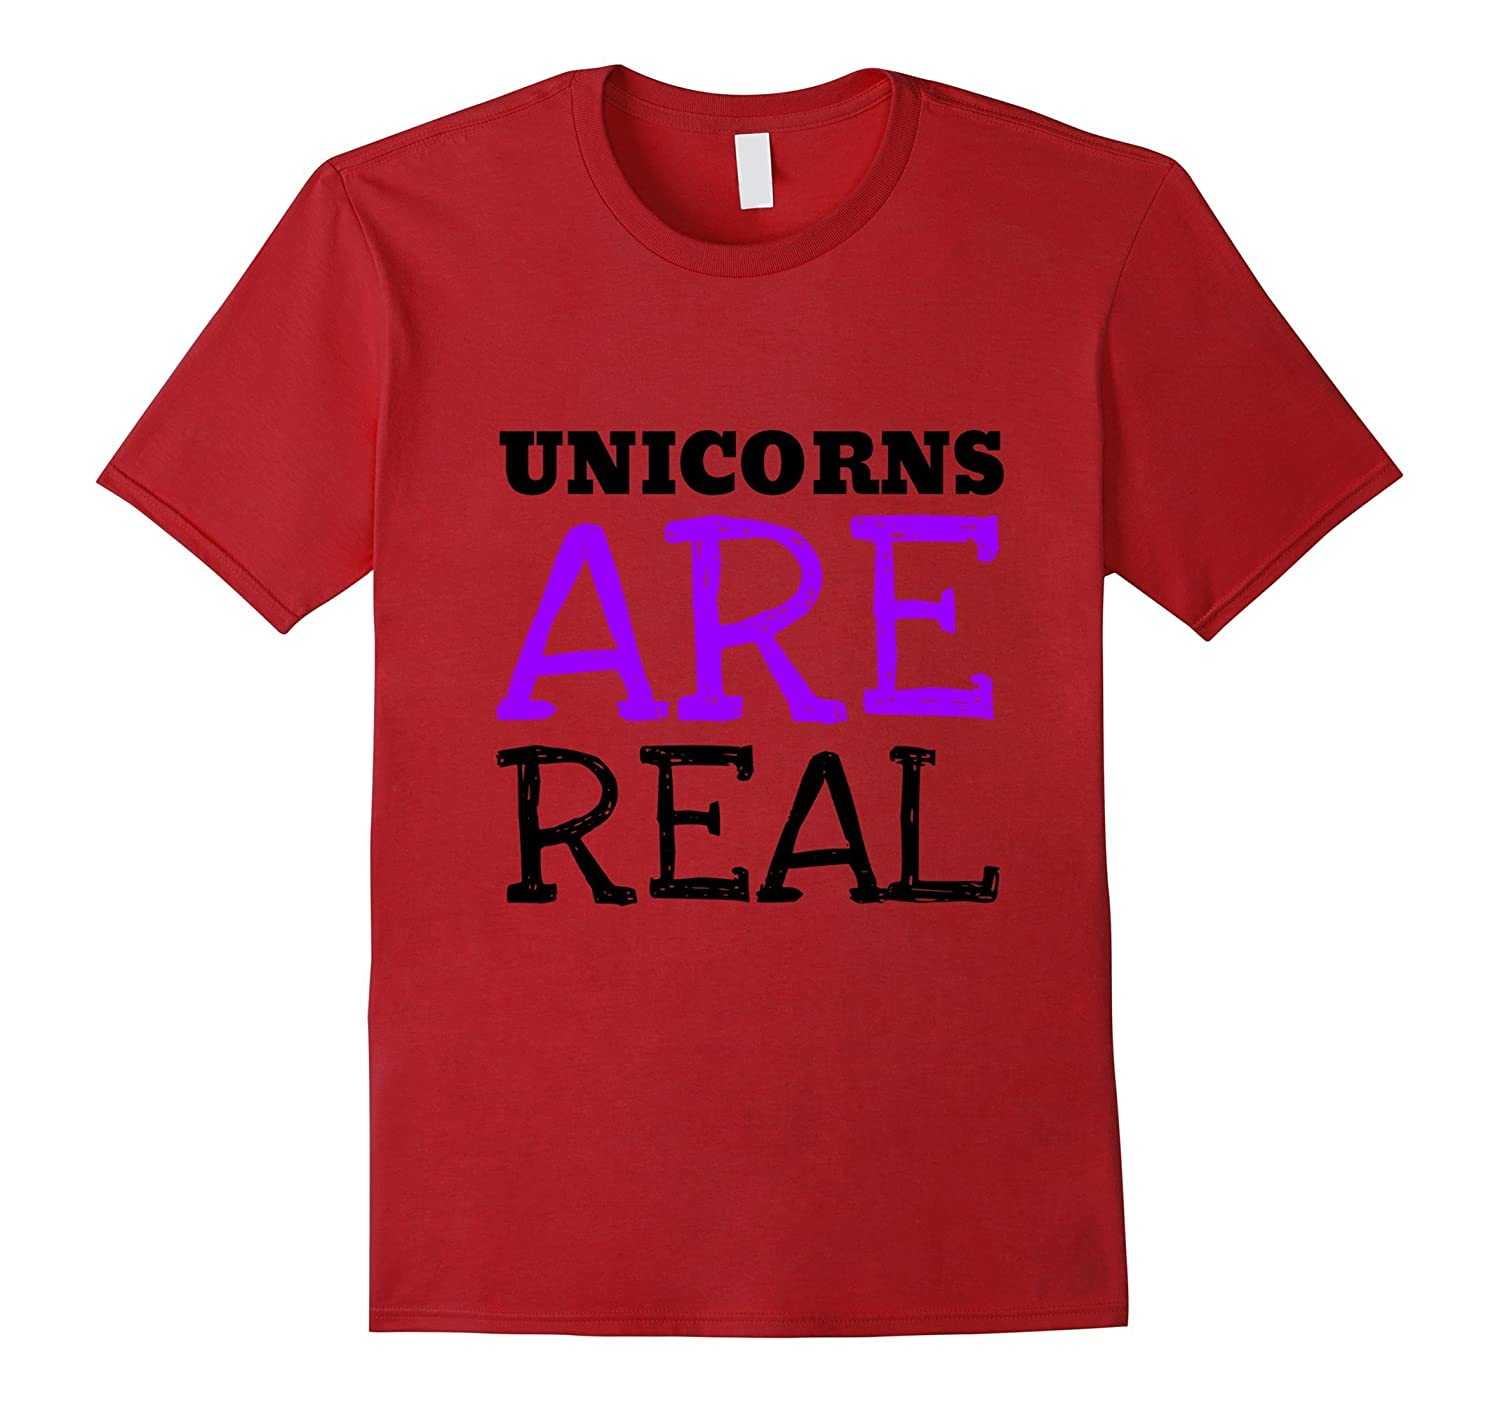 OFFICIAL Unicorns Are Real T Shirt Womens Mens Kids-4LVS